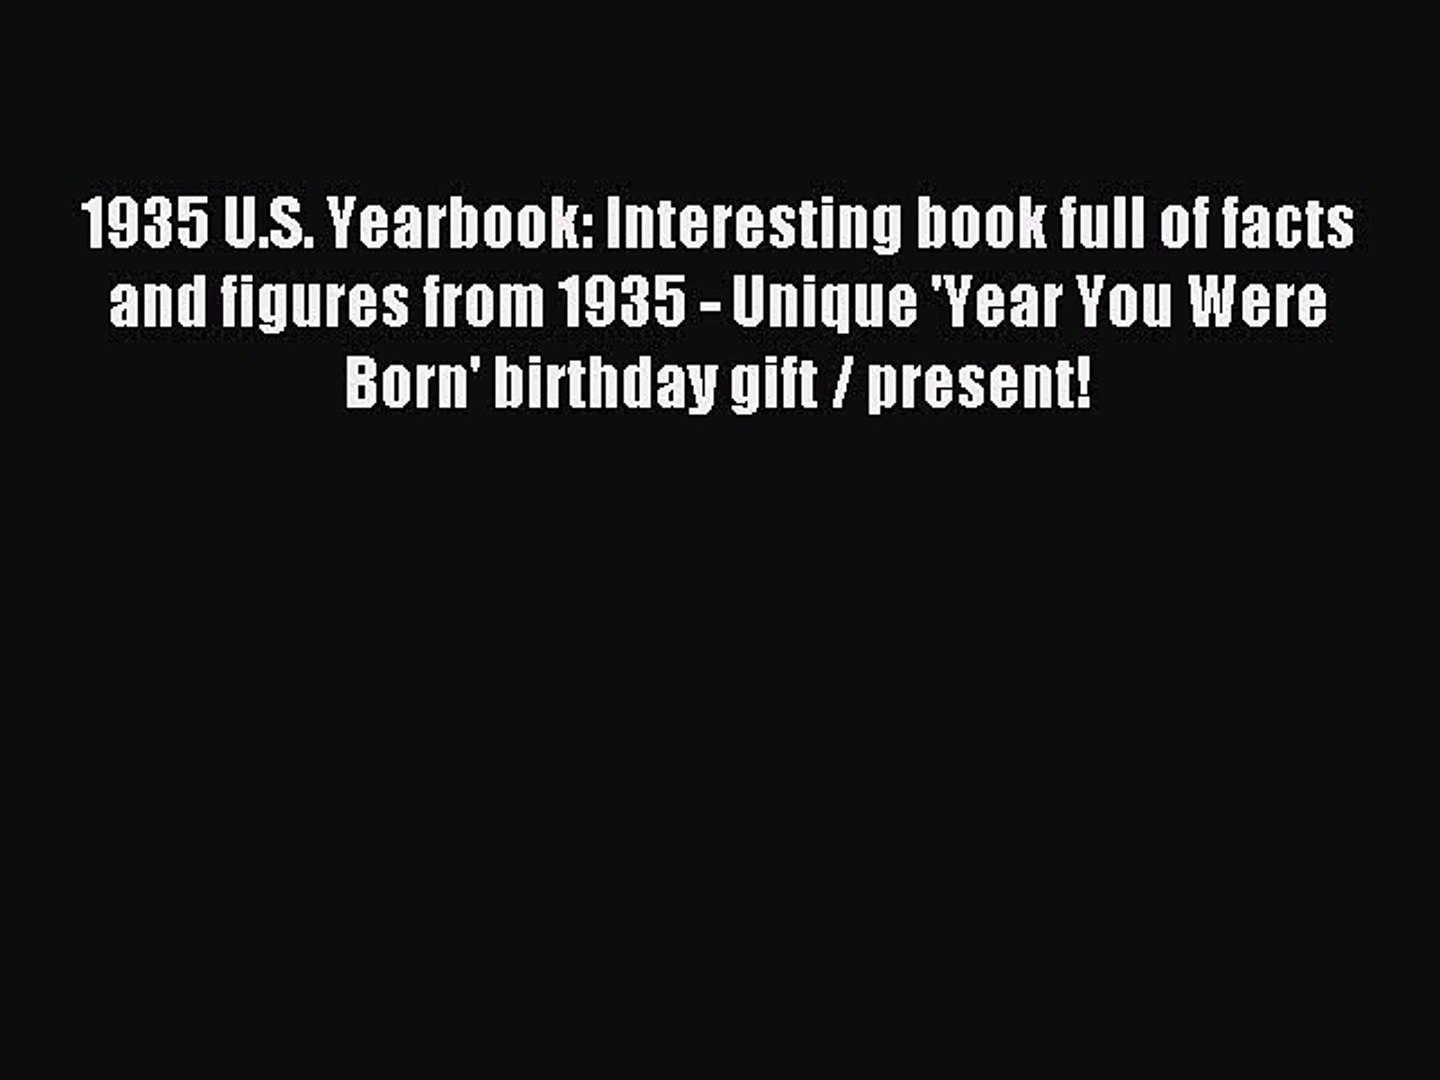 Read 1935 U.S. Yearbook: Interesting book full of facts and figures from 1935 - Unique 'Year